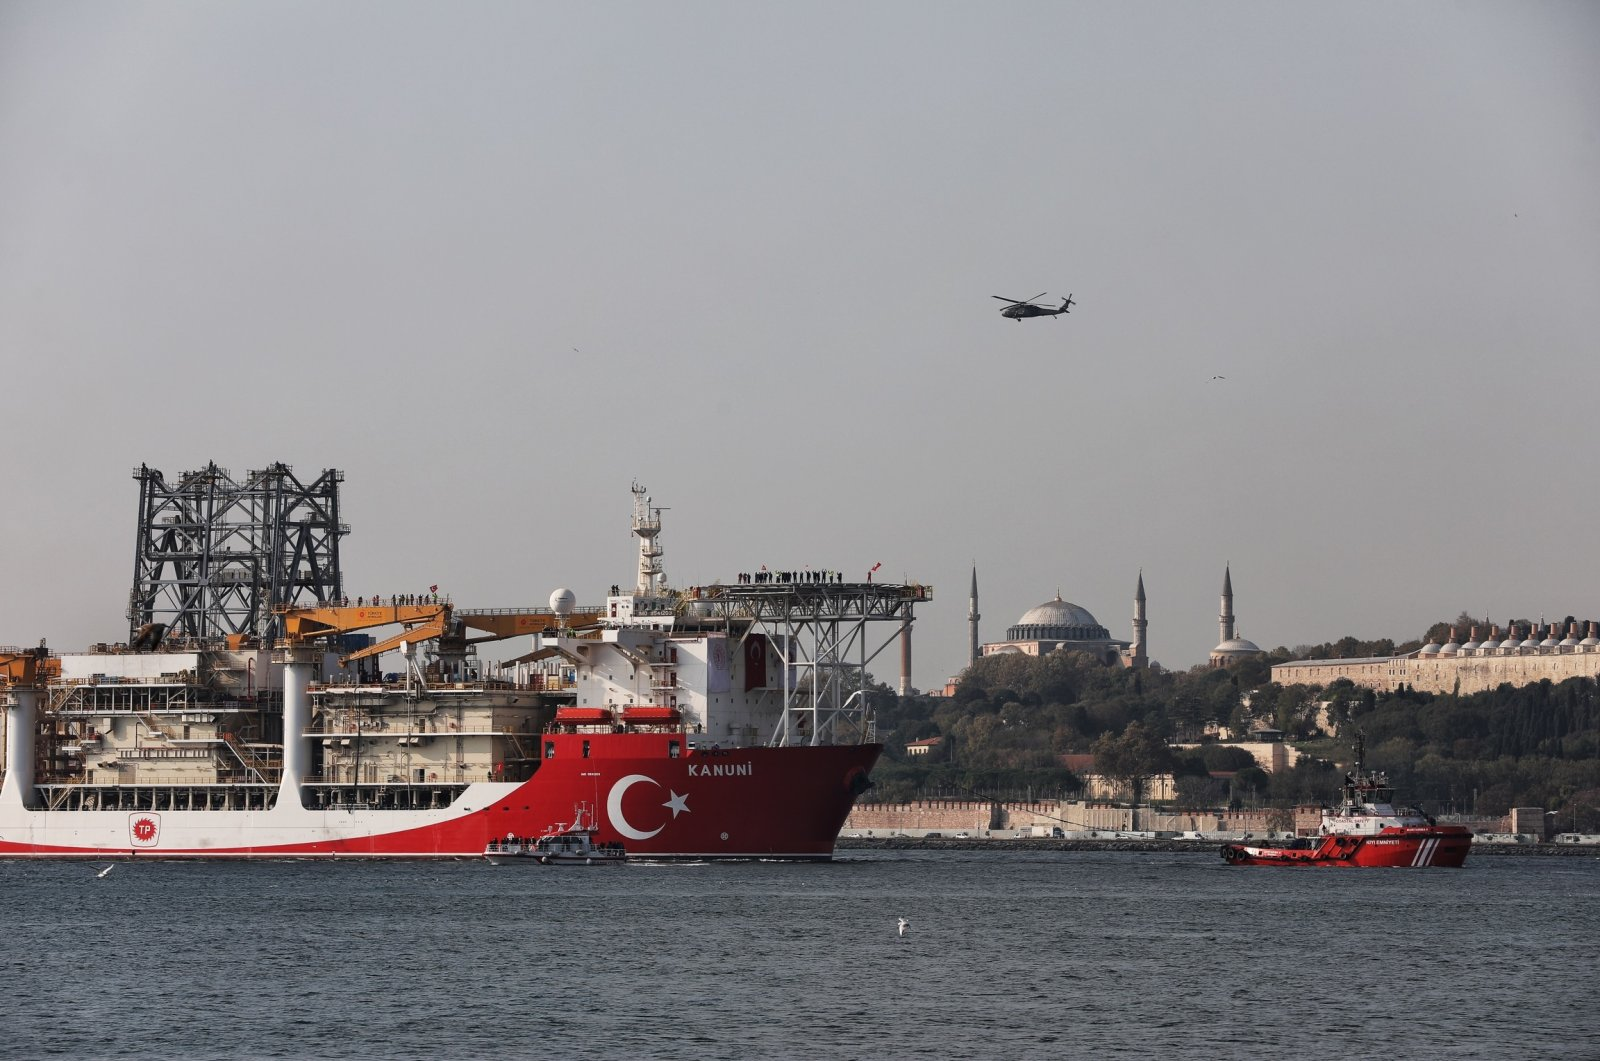 Turkey's third drillship Kanuni seen with the Topkapı Palace in the background, Istanbul, Turkey, Nov. 13, 2020. (Photo by Getty Images)